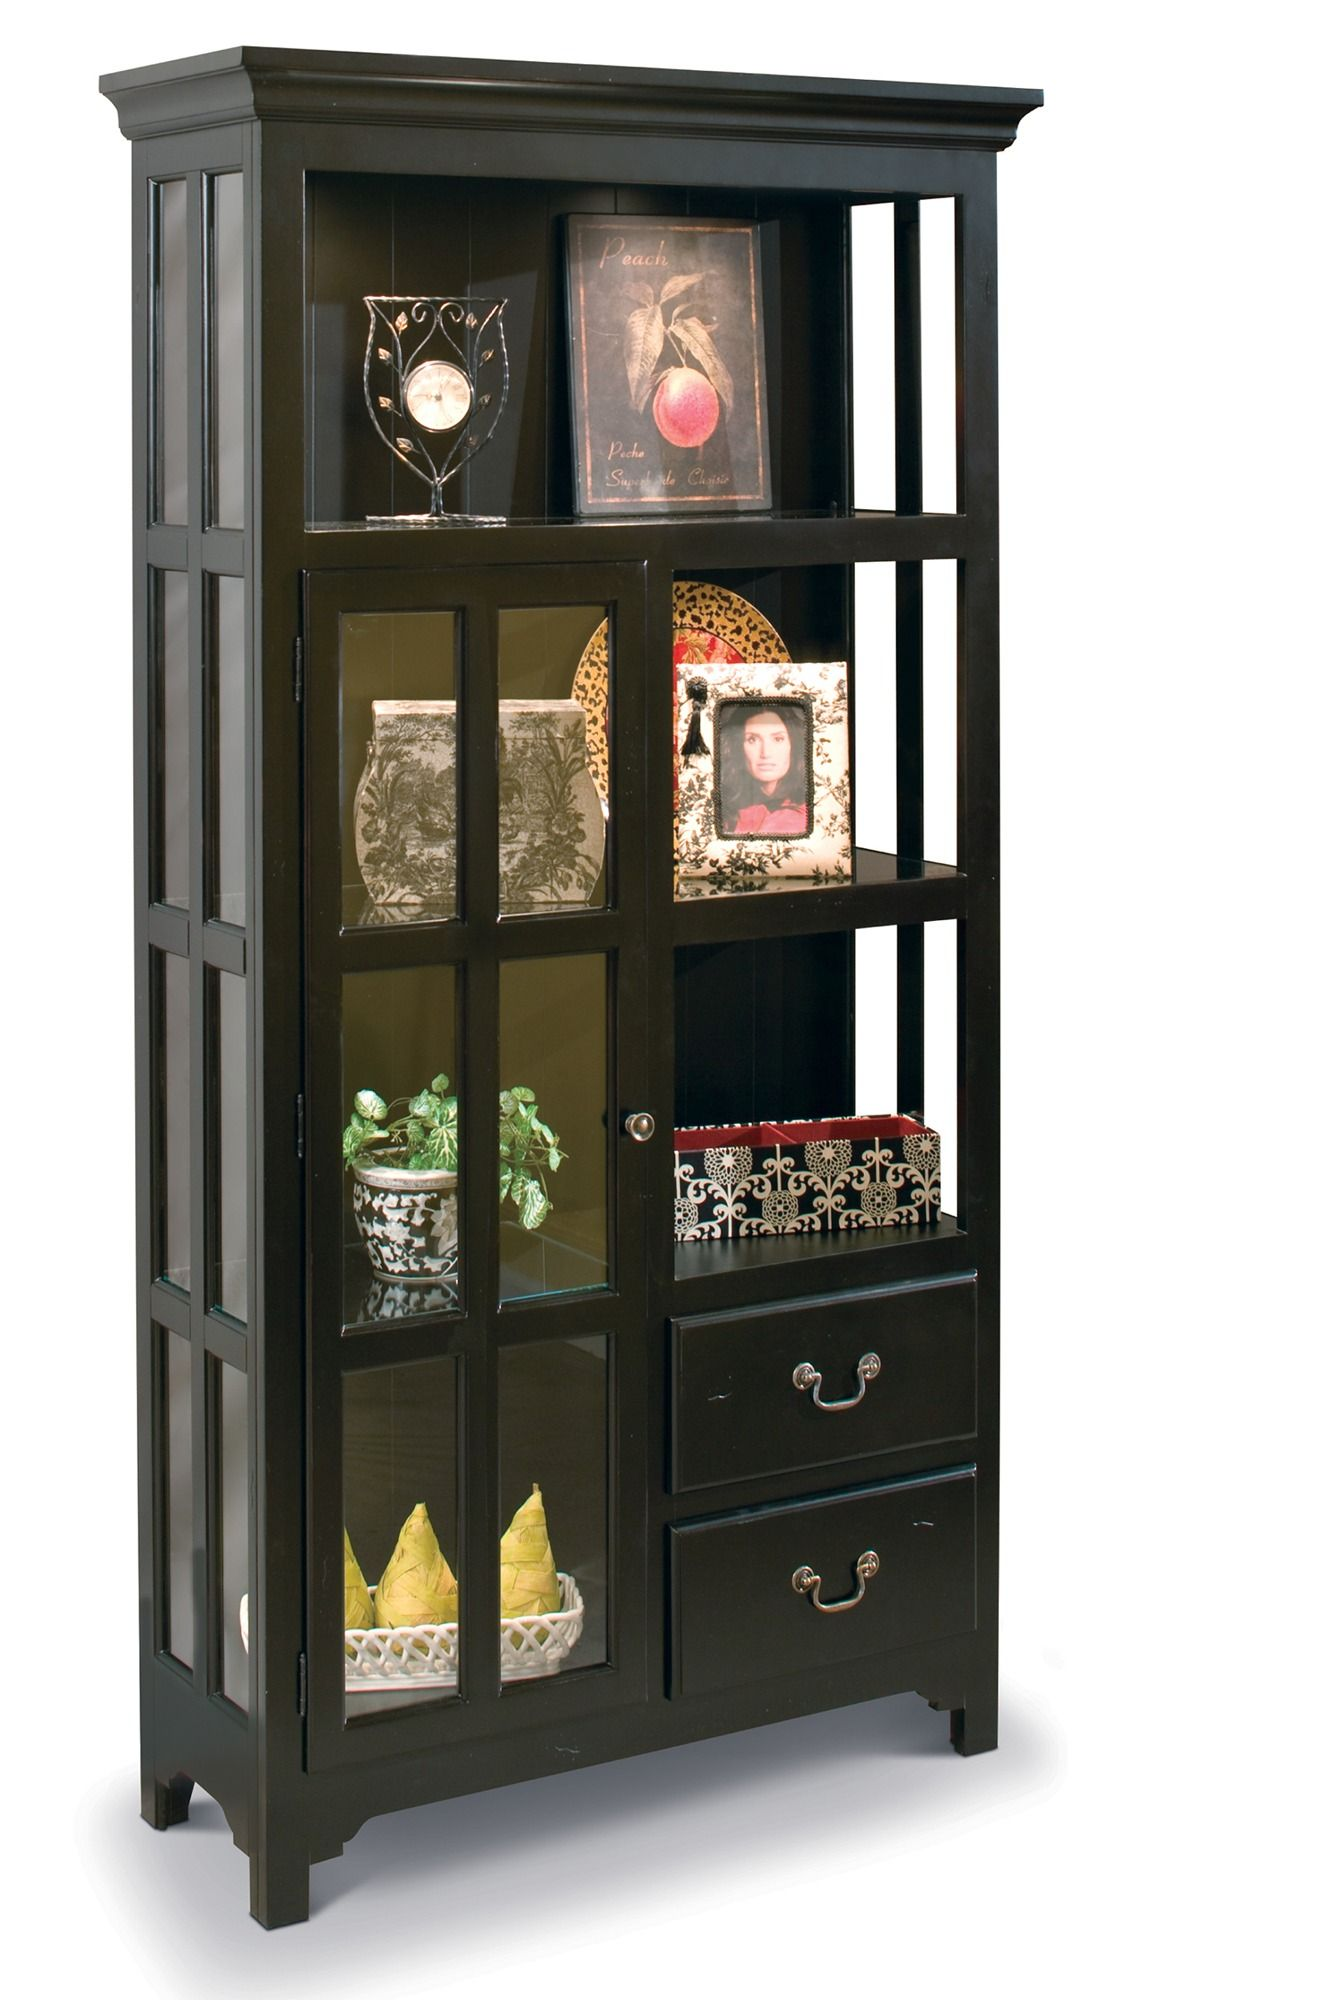 New Haven Display Cabinet In Black Philip Reinisch Home Gallery Stores With Images Display Cabinet Glass Cabinet Doors Cabinet